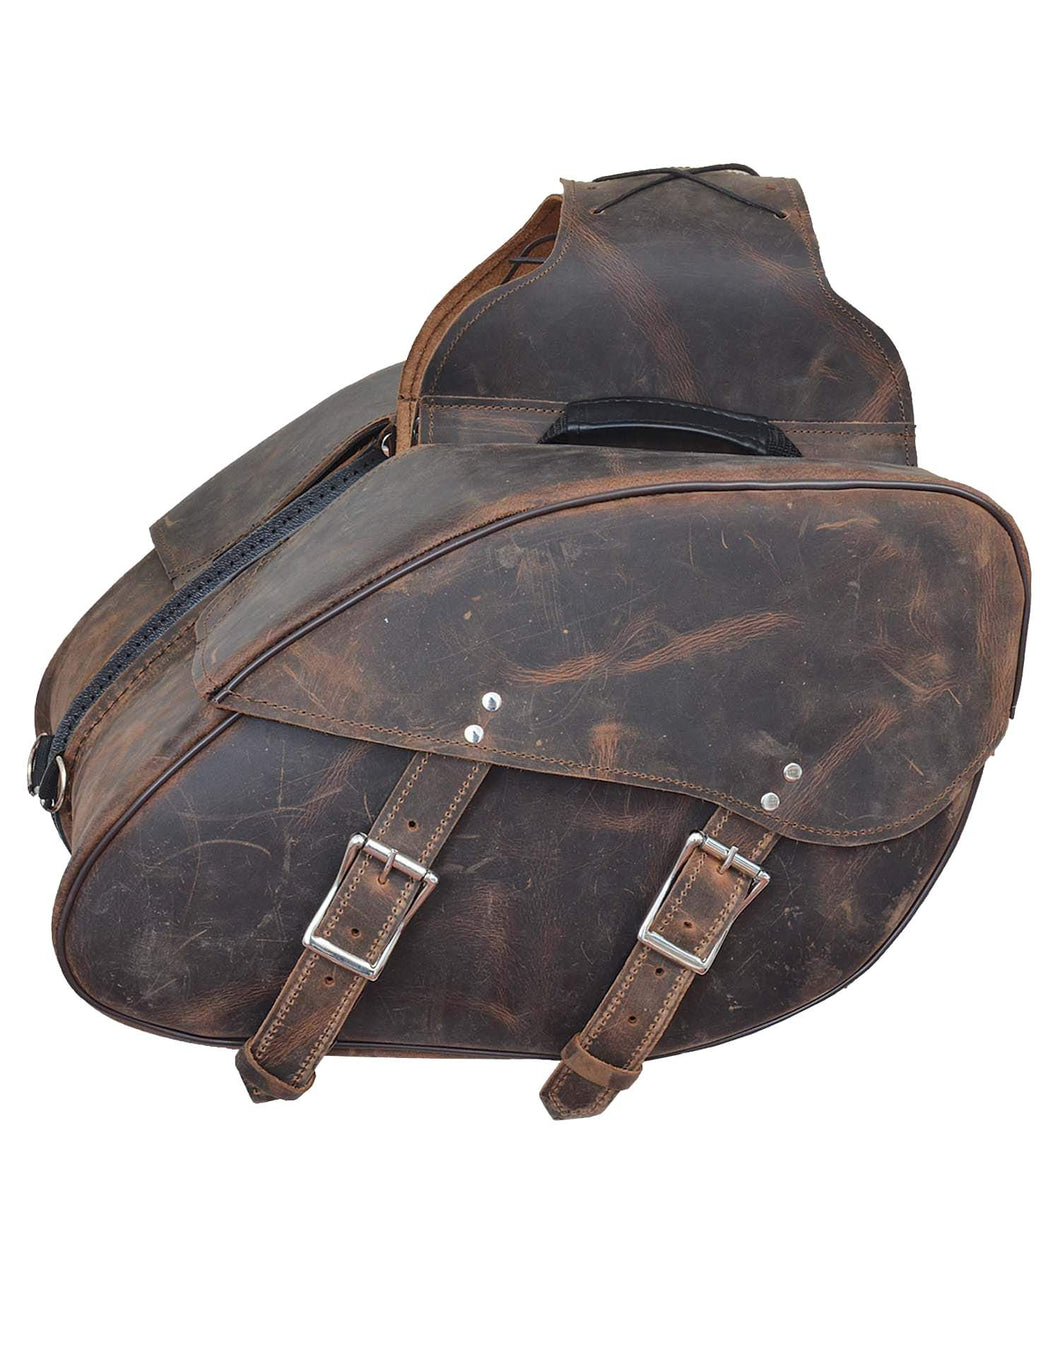 UNIK Leather Saddle Bags - Ghost Rider Leather